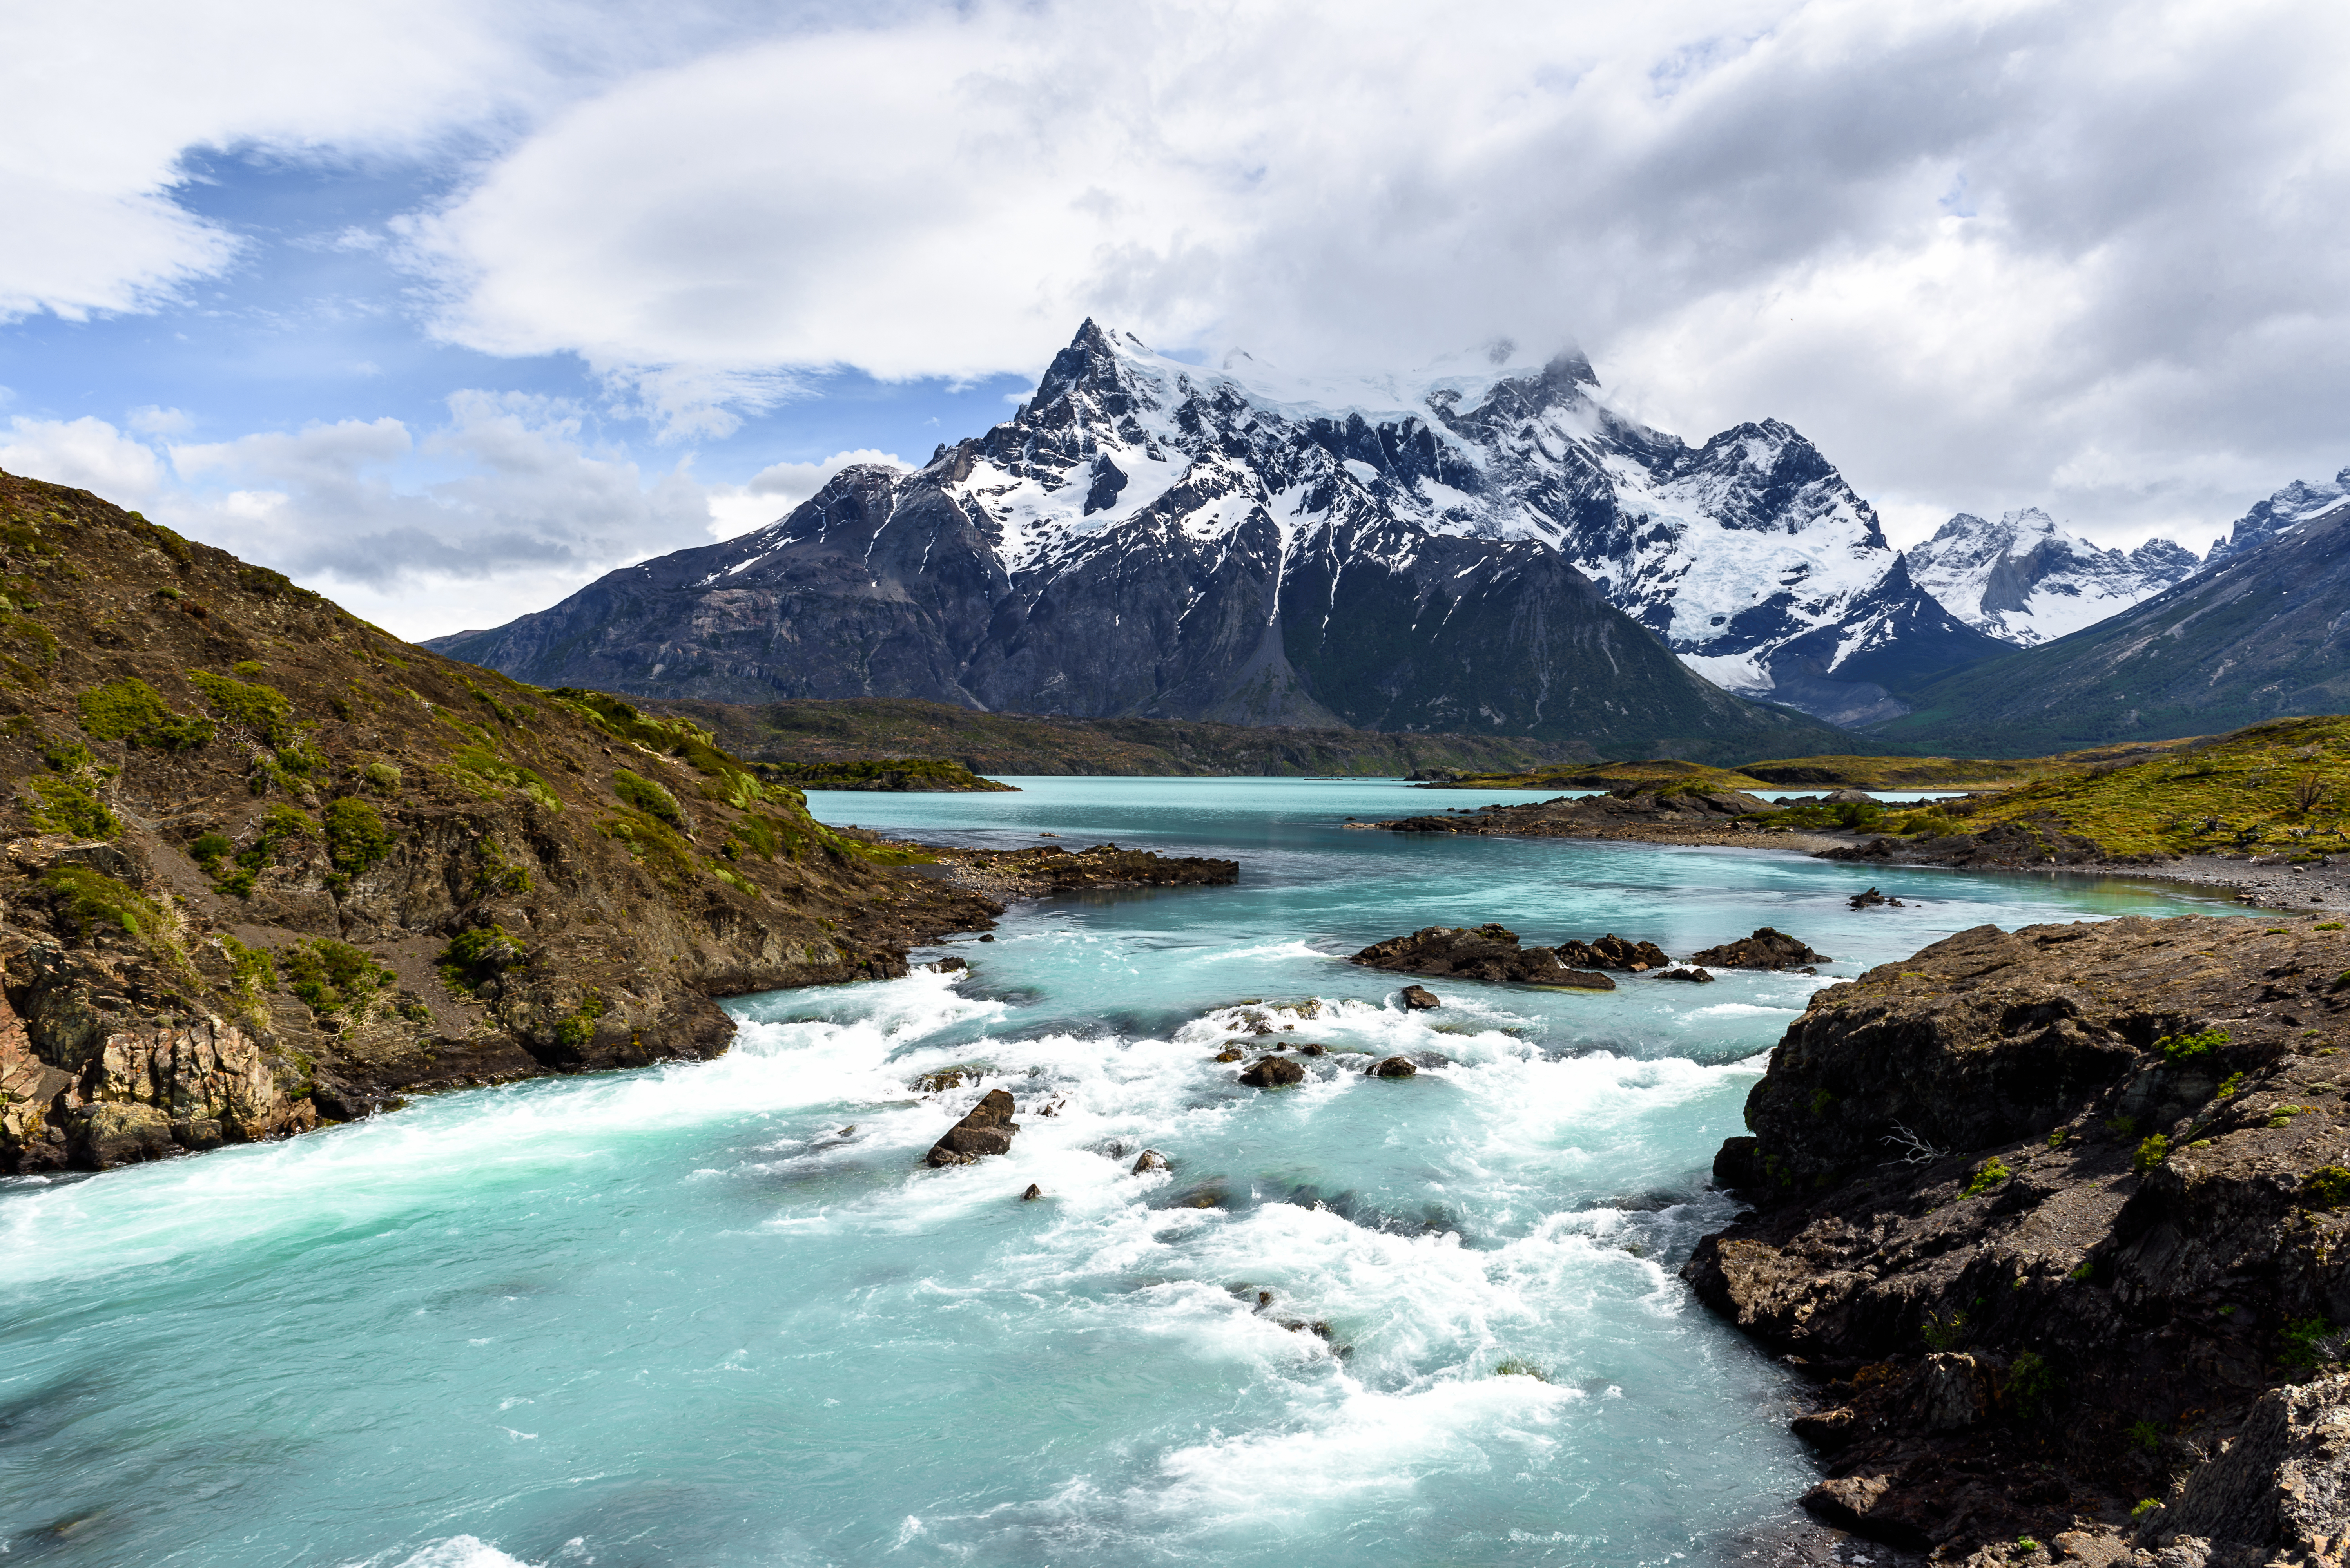 River flowing with mountains in the background at the Torres del Paine national park in Patagonia in Chile